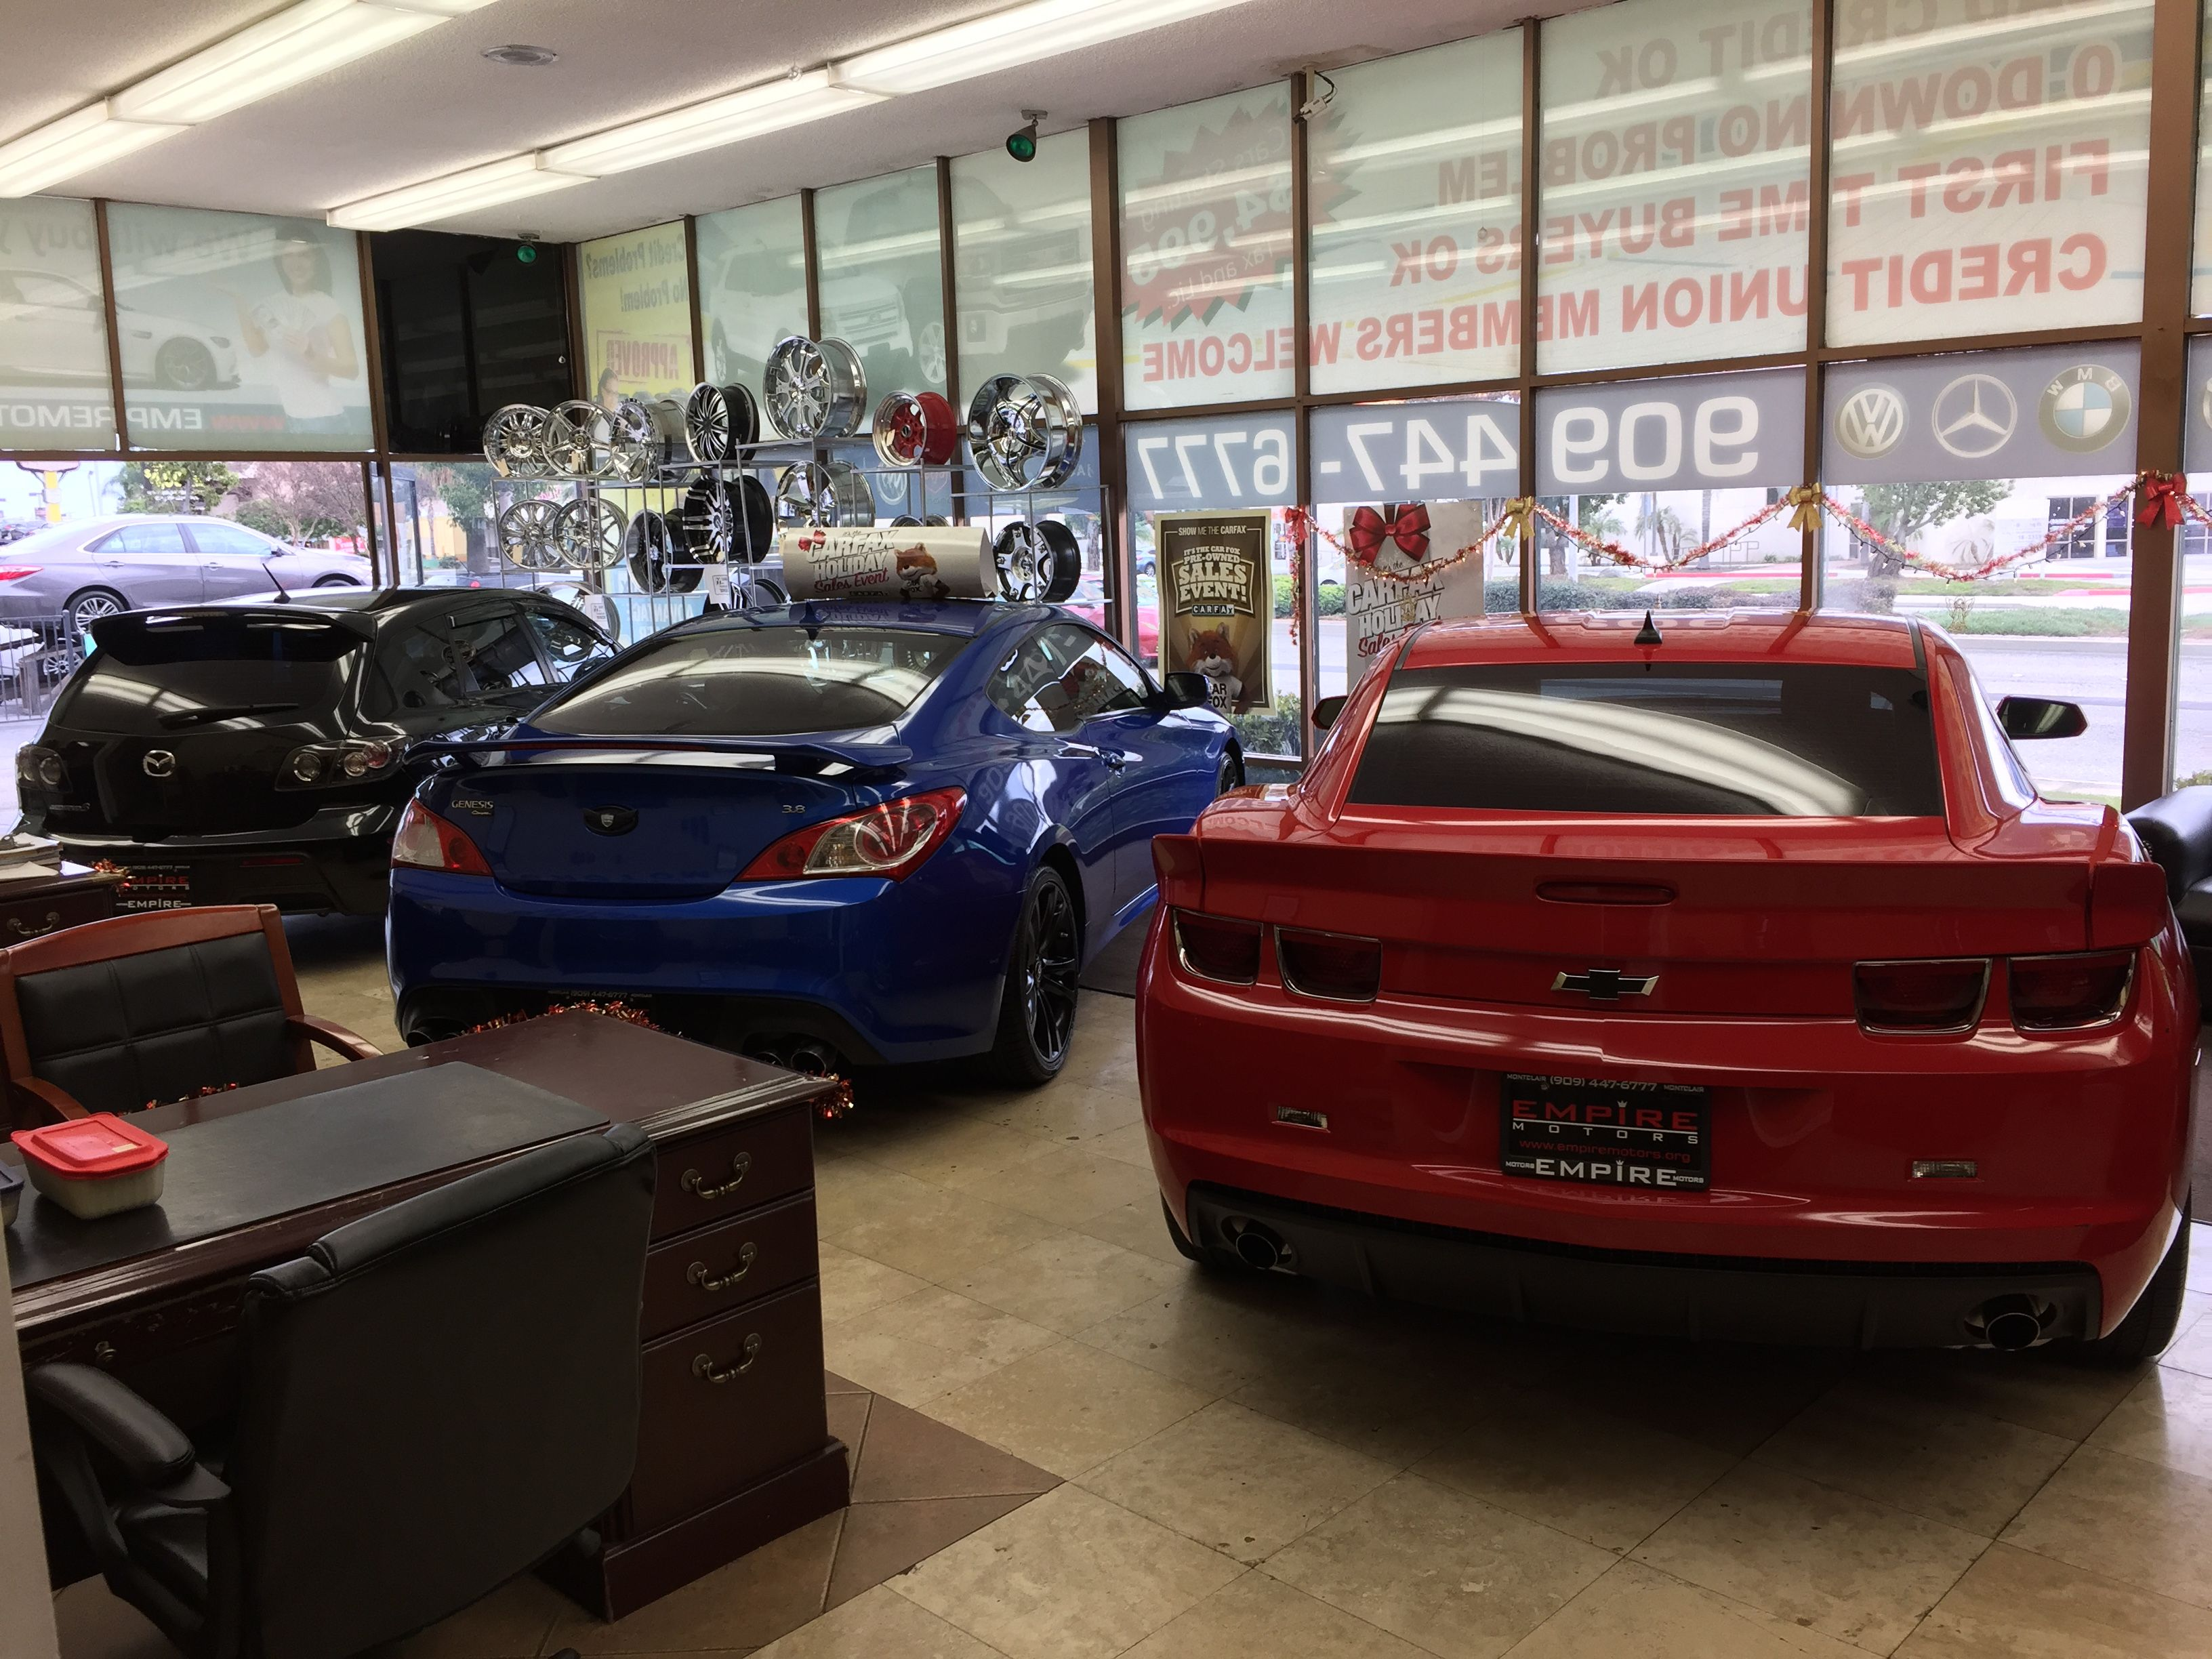 Check Out Our Selection Of Quality Used Cars Trucks Vans And Suv At Empire Motors In Montclair Ca Visit Our Website Riverside County Pomona Rancho Cucamonga